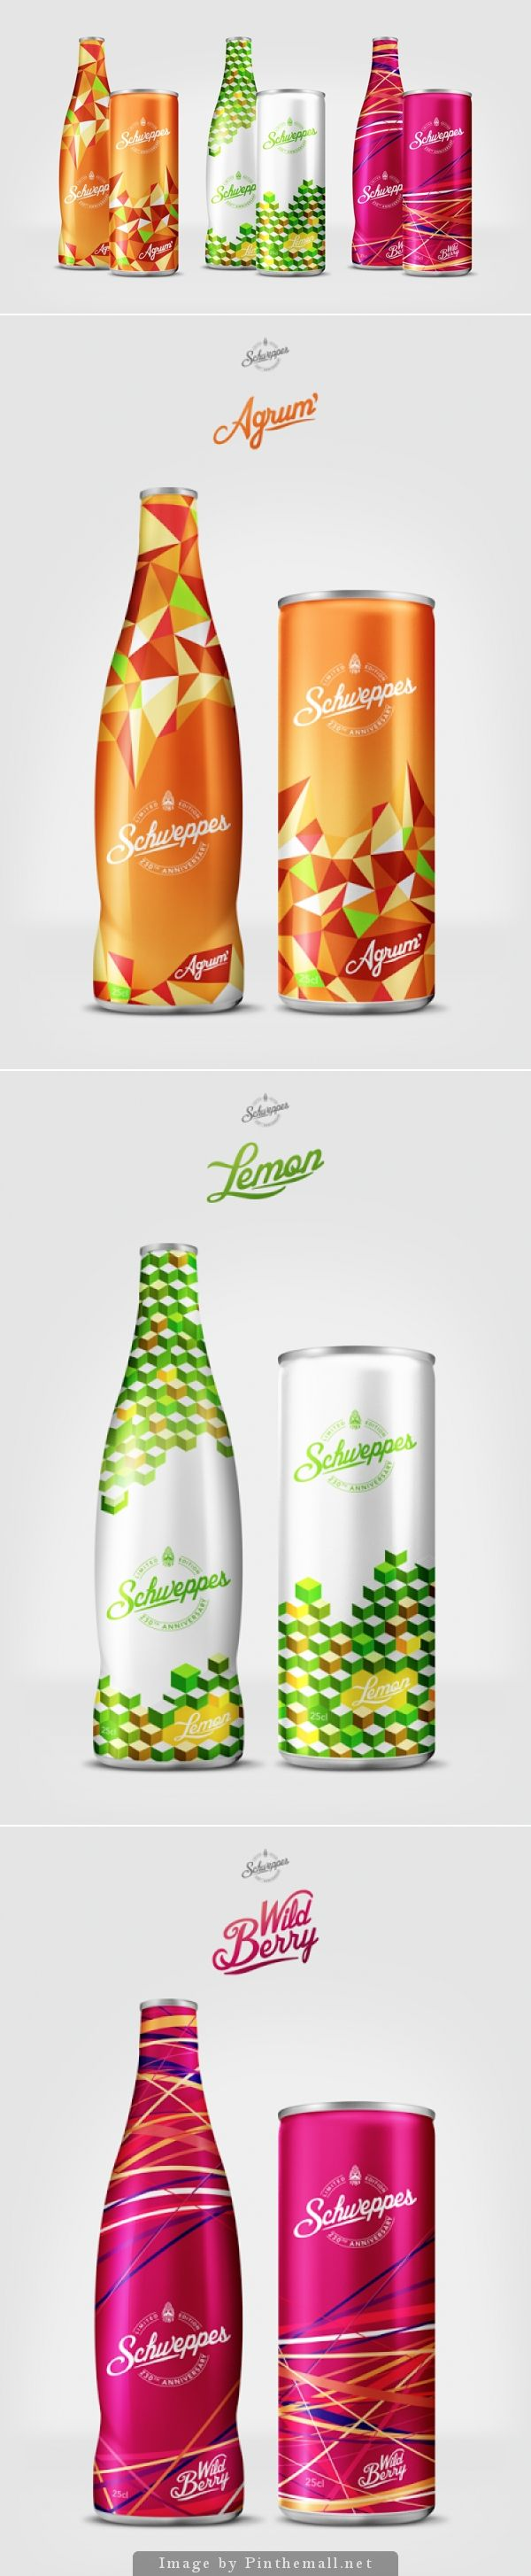 Schweppes 230 Years (Concept) #packaging